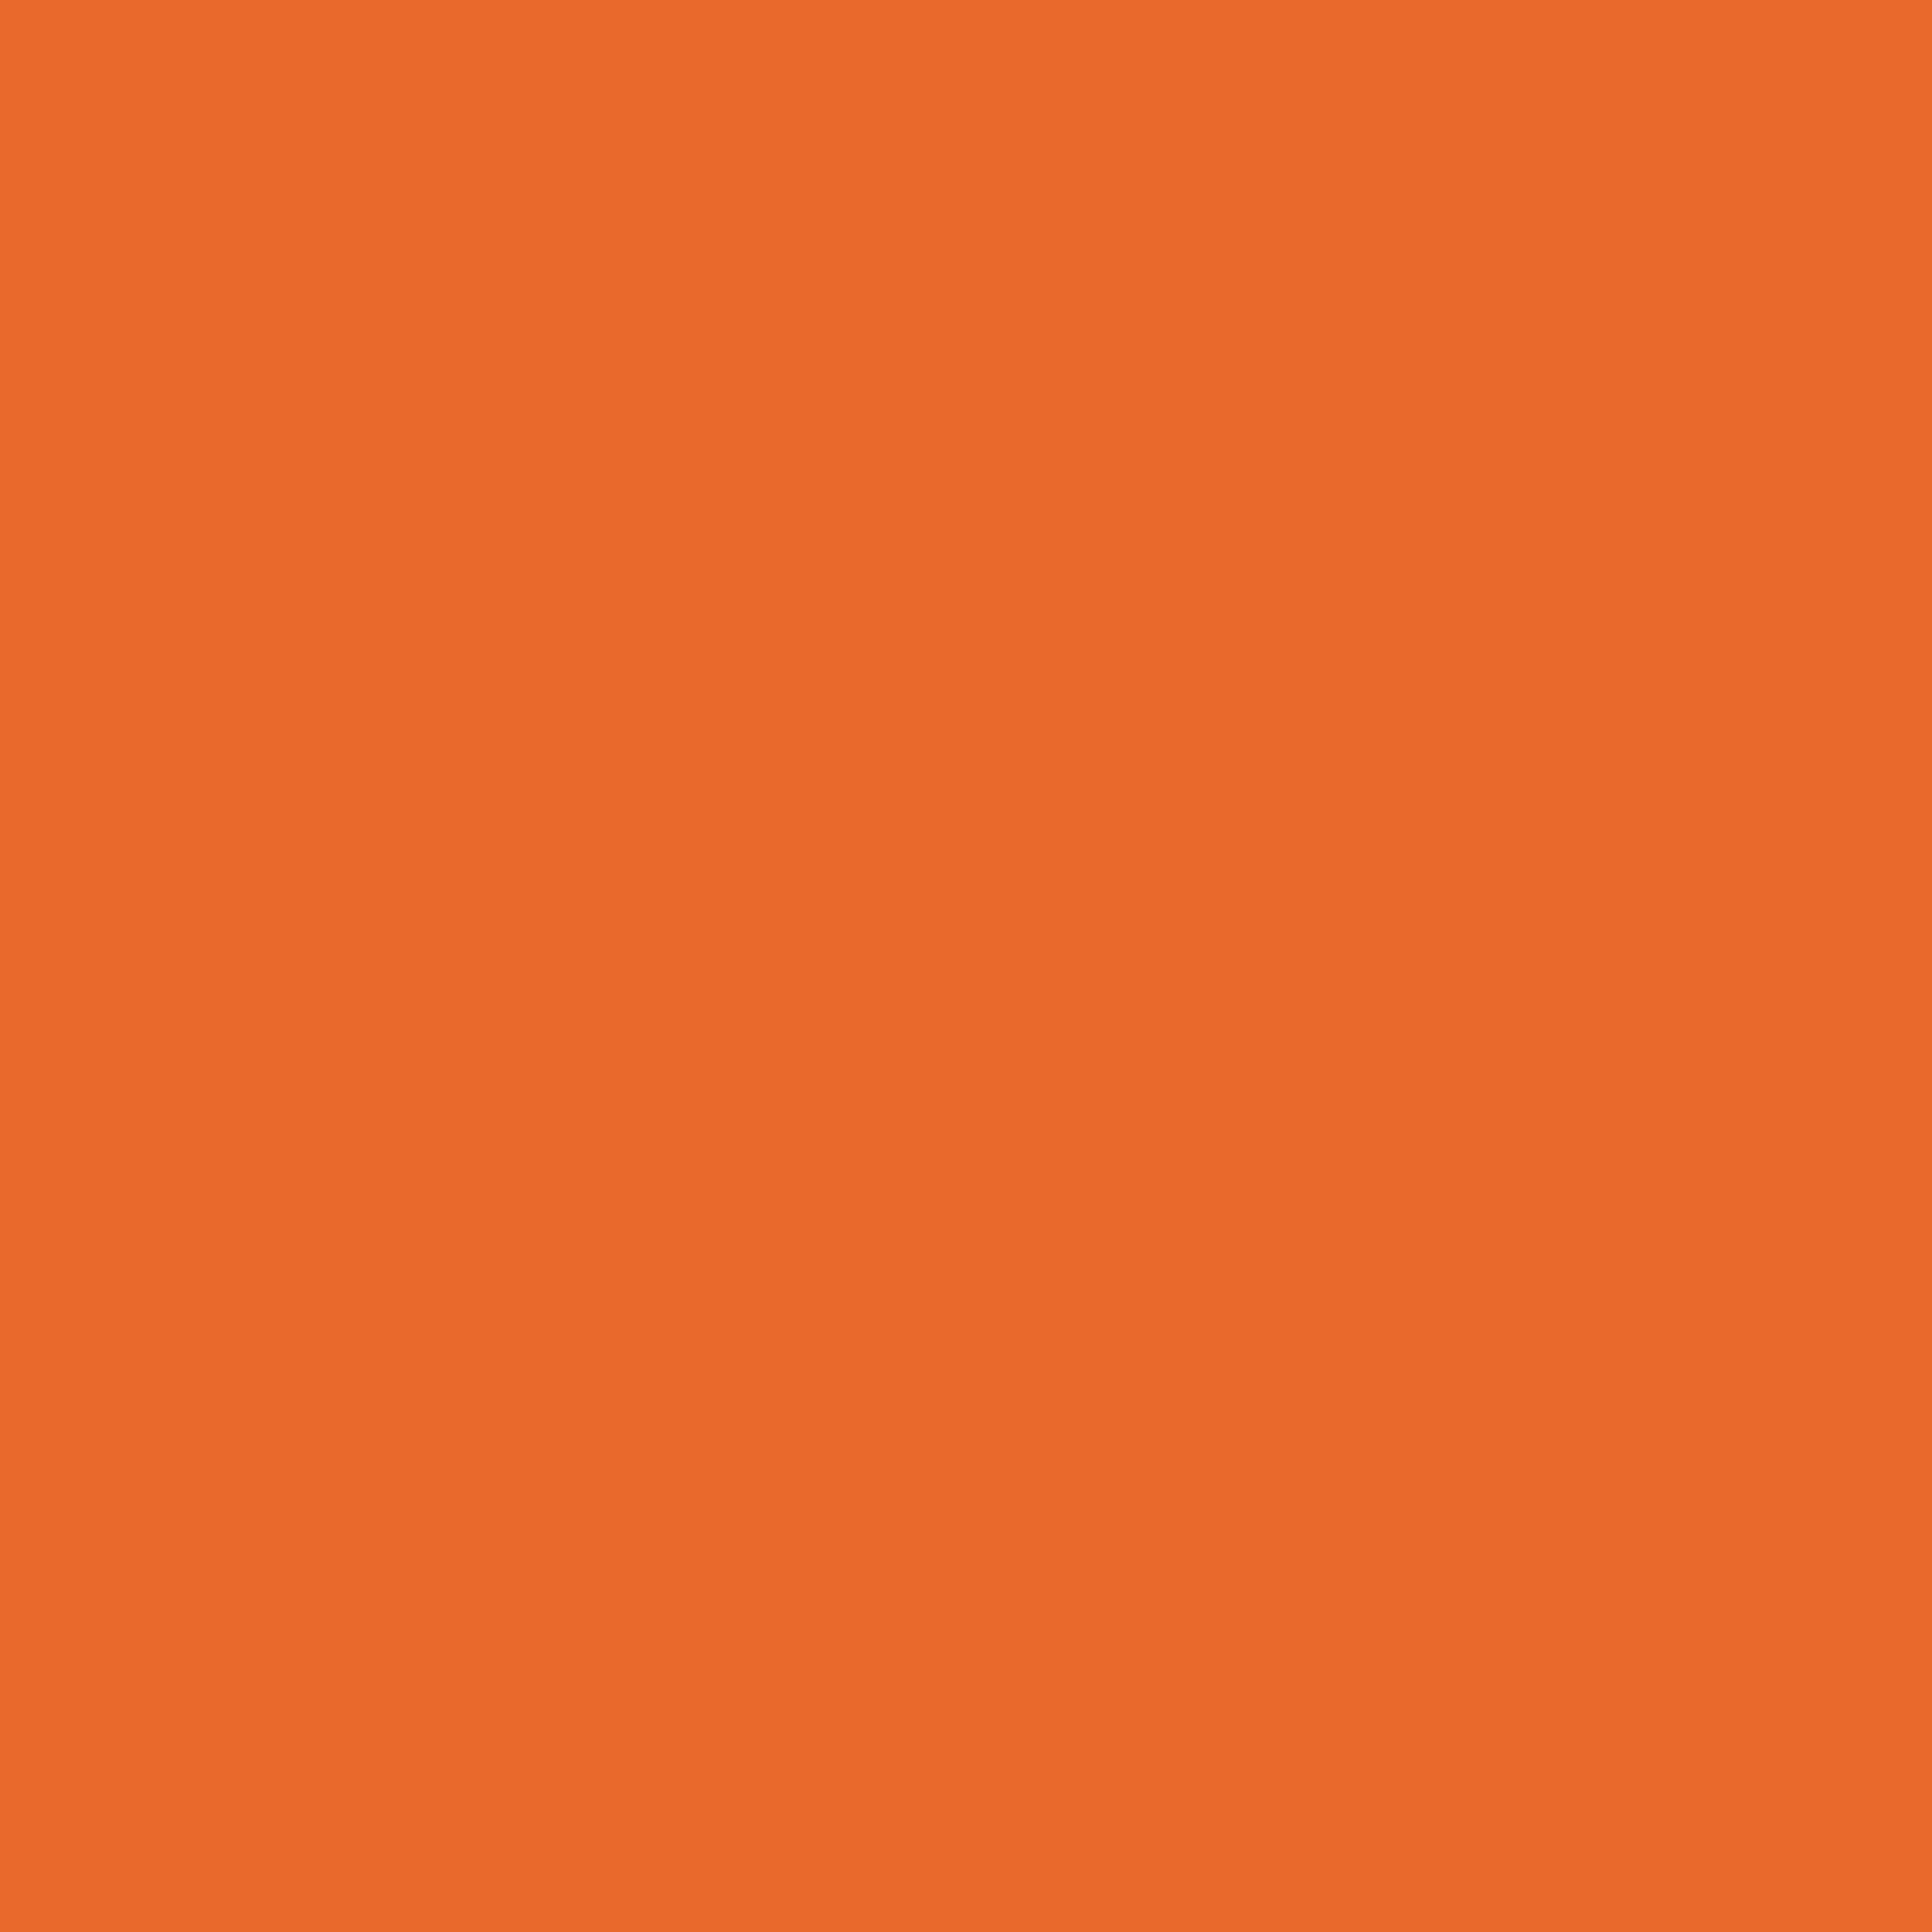 2048x2048 Deep Carrot Orange Solid Color Background